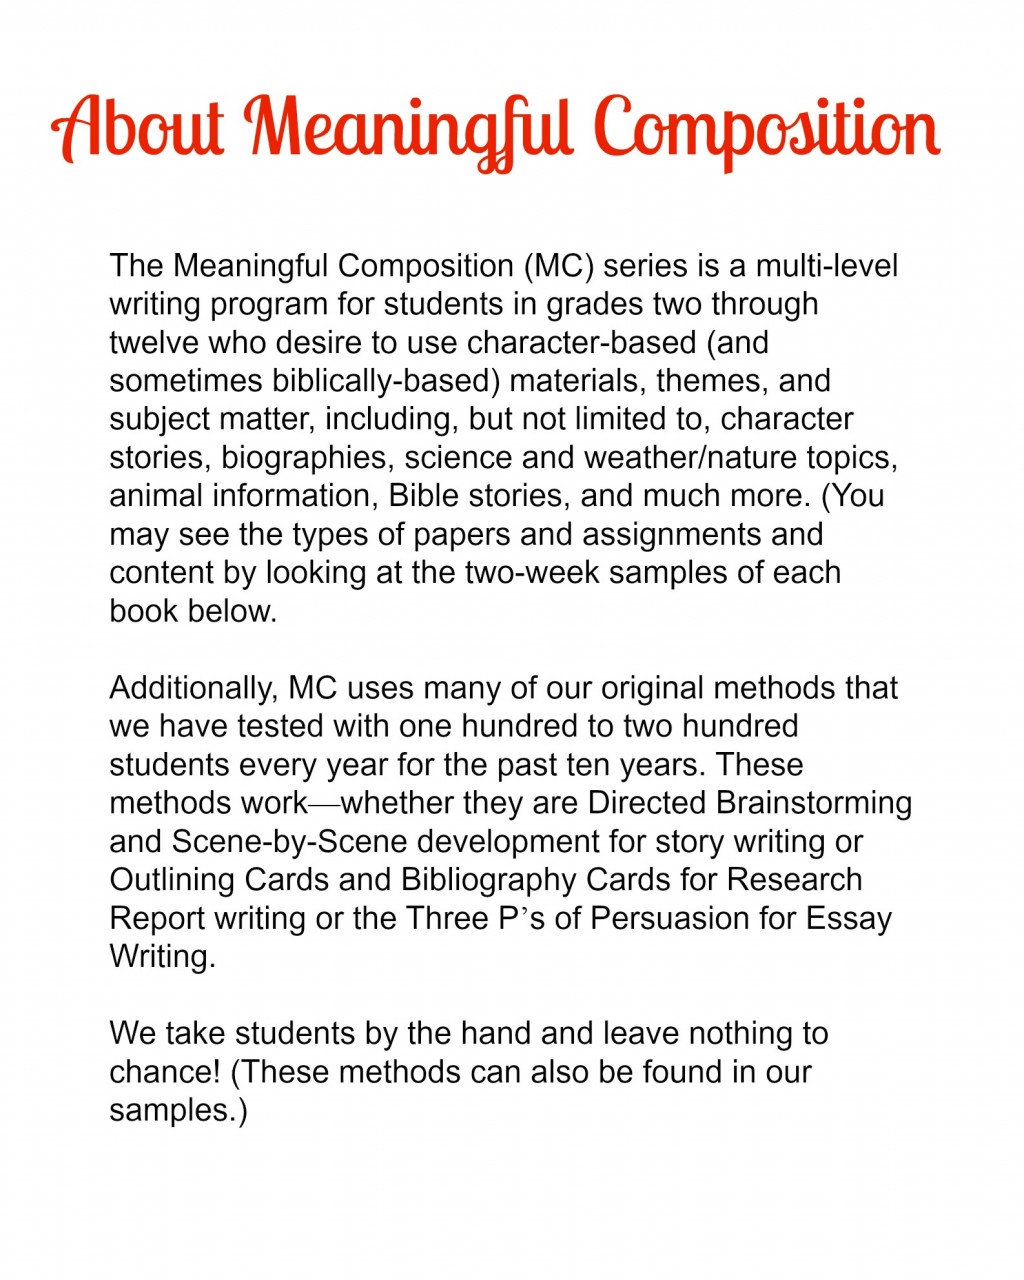 011 Essay Example Expository Examples Of Introductions Creative Writing Course Paragraph Persuasive On Bullyingbout Meaningful Compos Cyber How To Prevent Five Exceptional A Thesis Statement For Middle School Argumentative Ppt 4th Grade Large